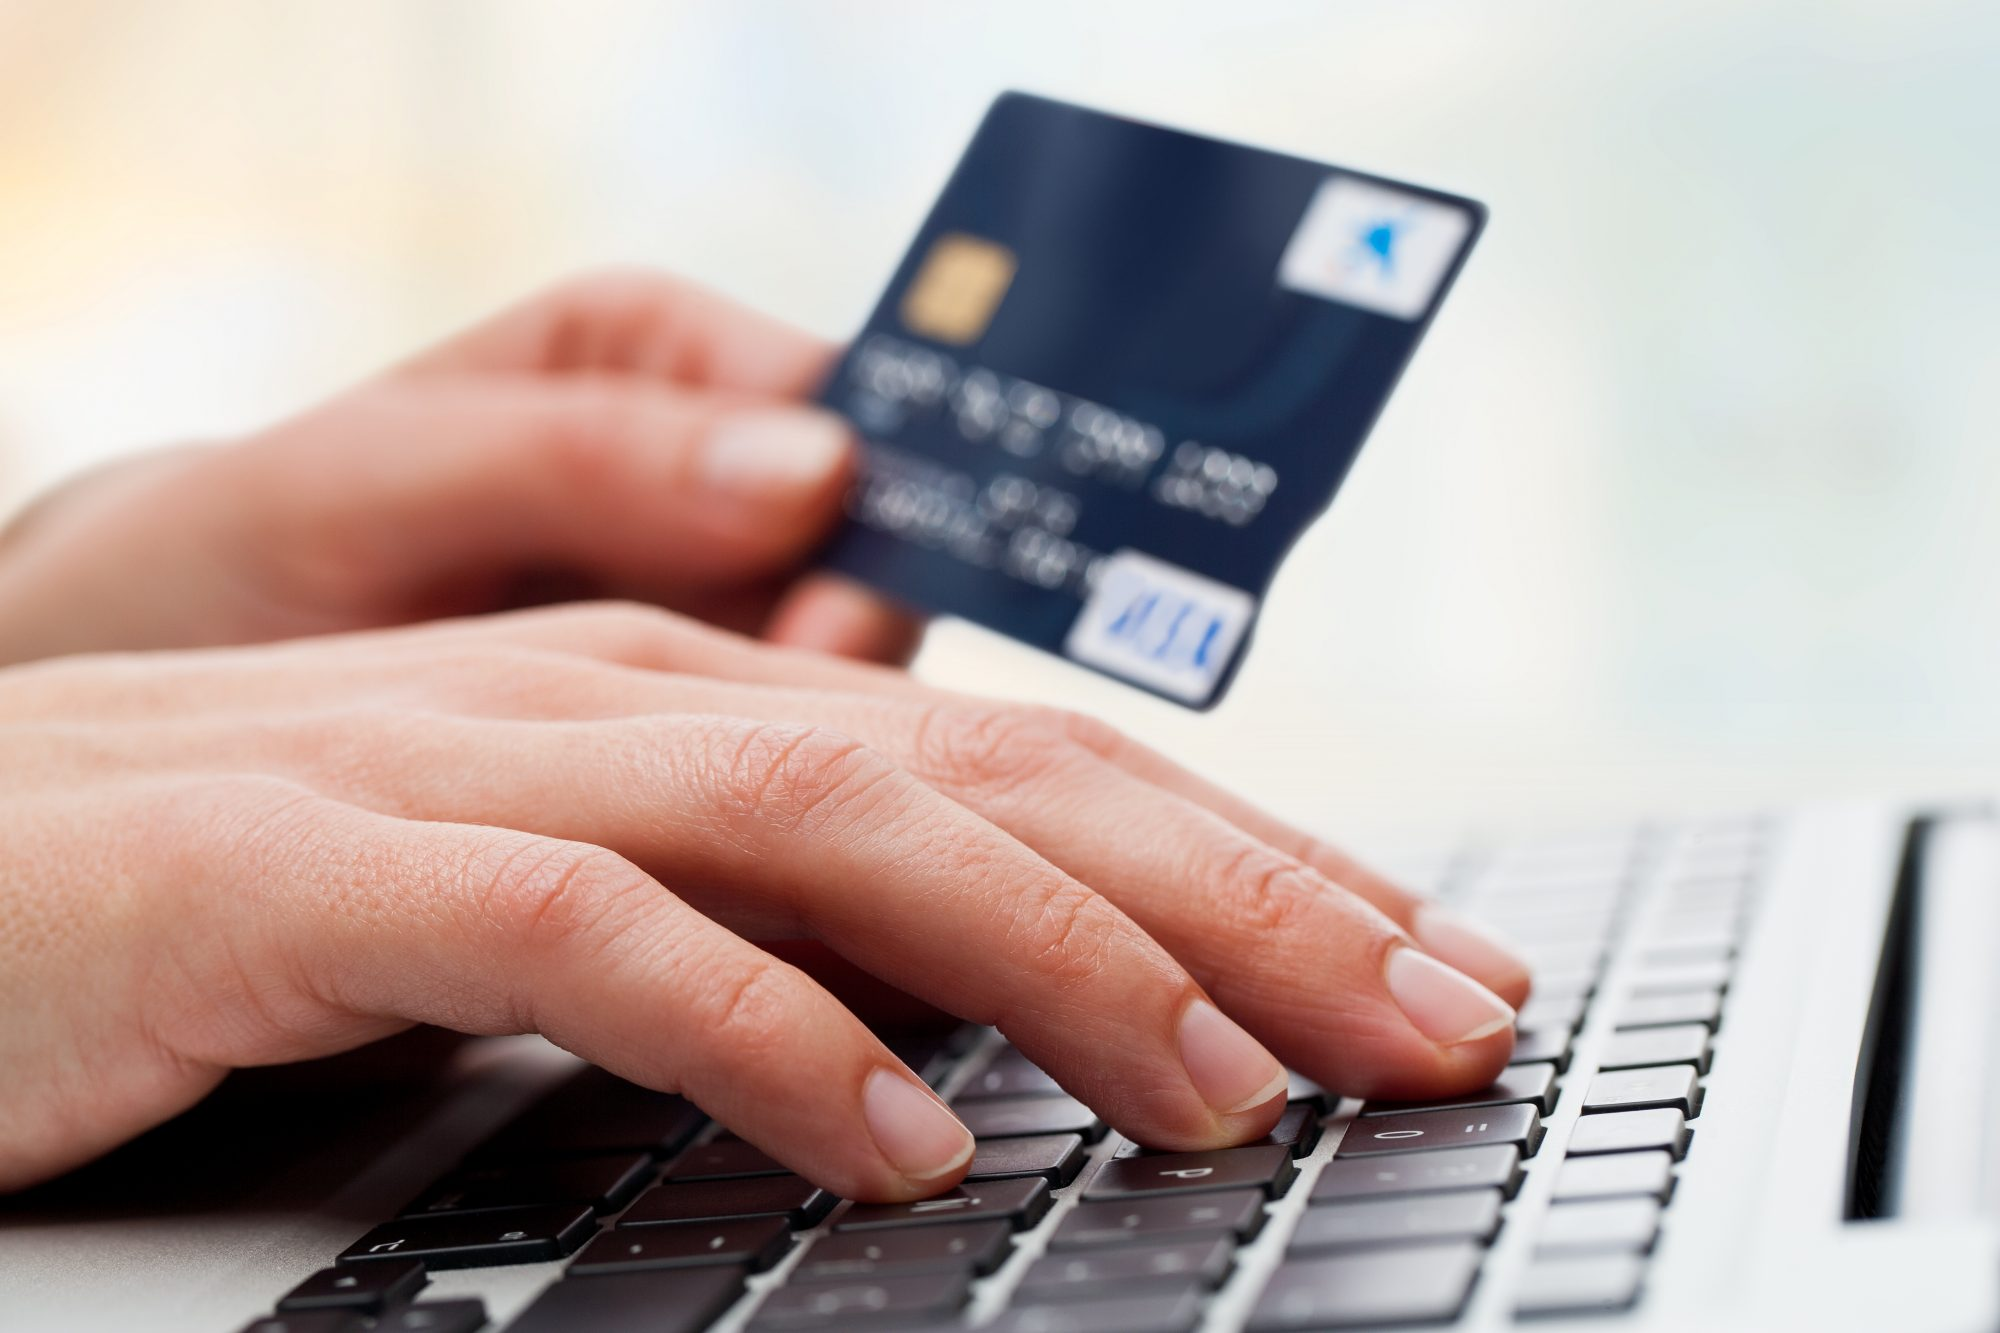 Hand typing on laptop with credit card